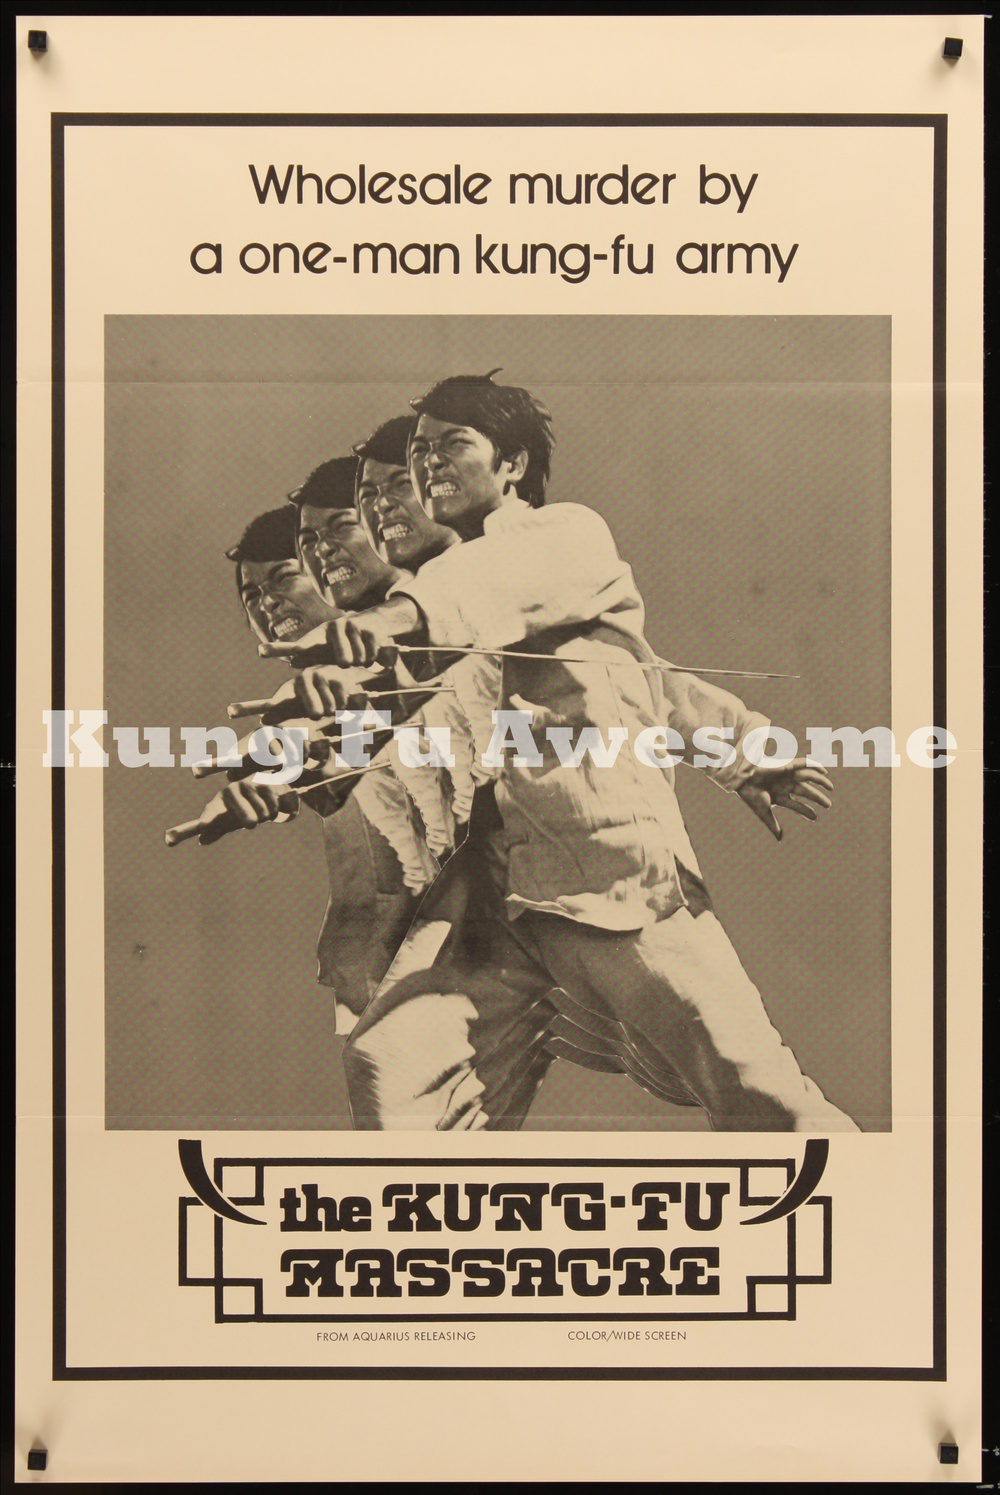 kung_fu_massacre_NZ02851_L.jpg